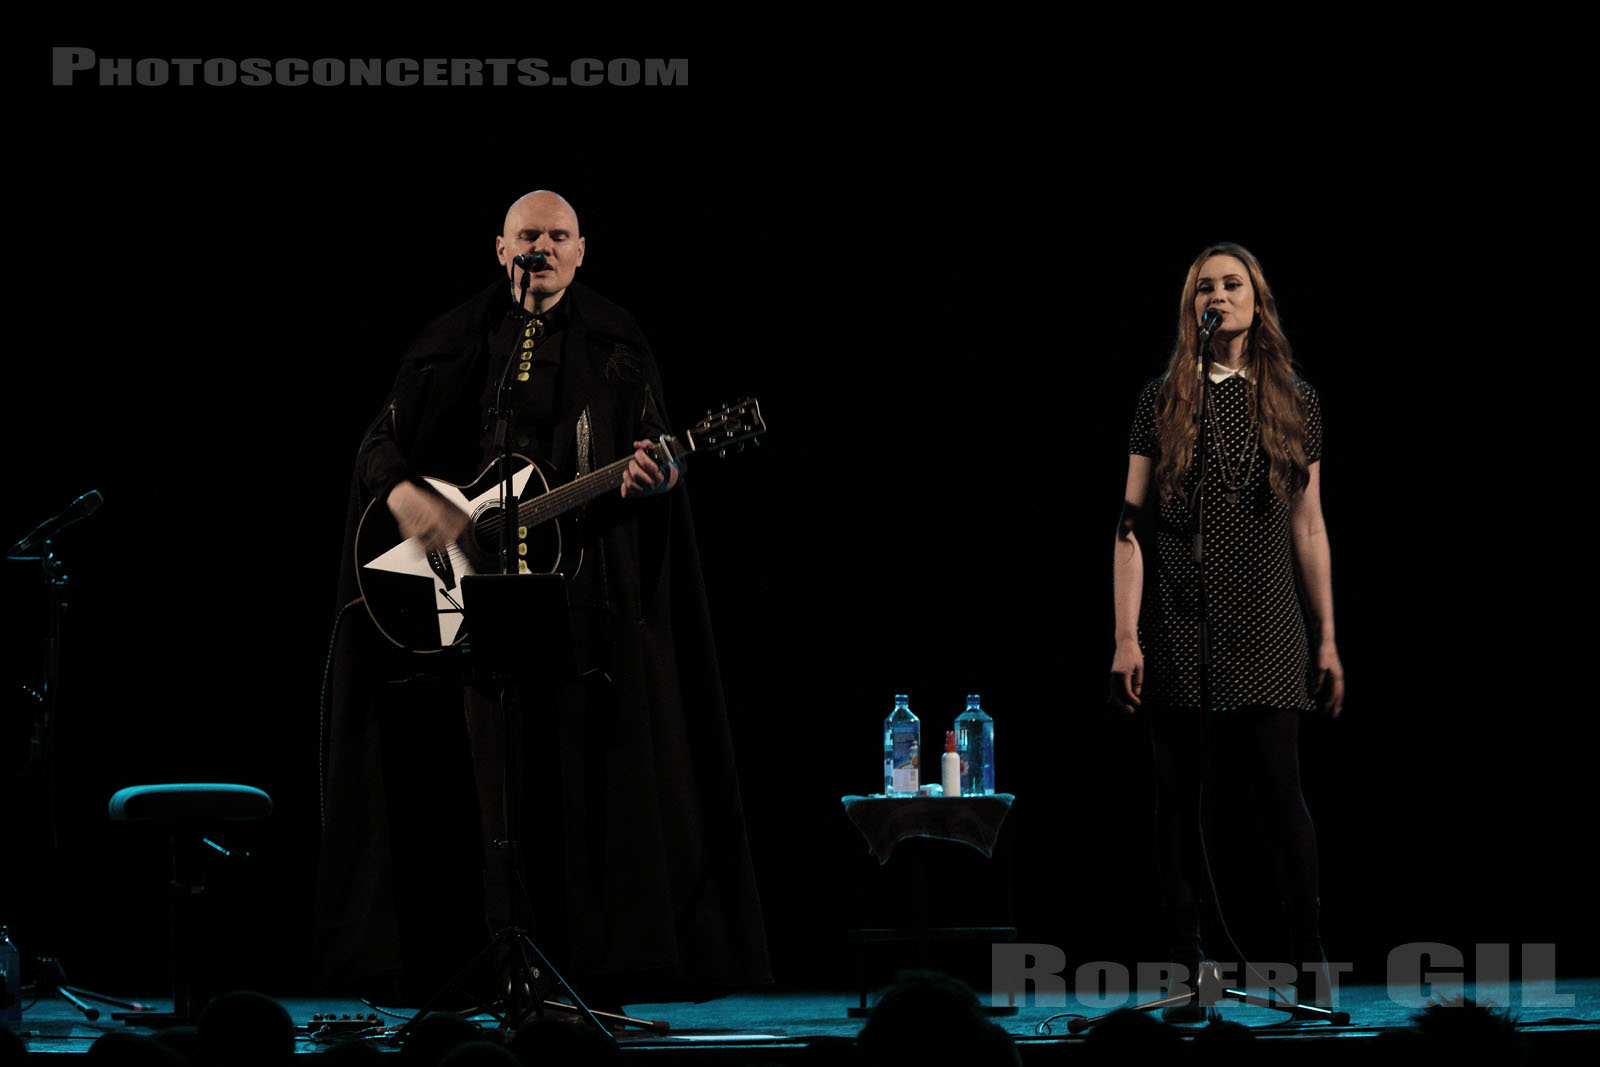 BILLY CORGAN - 2019-06-24 - PARIS - Le Trianon